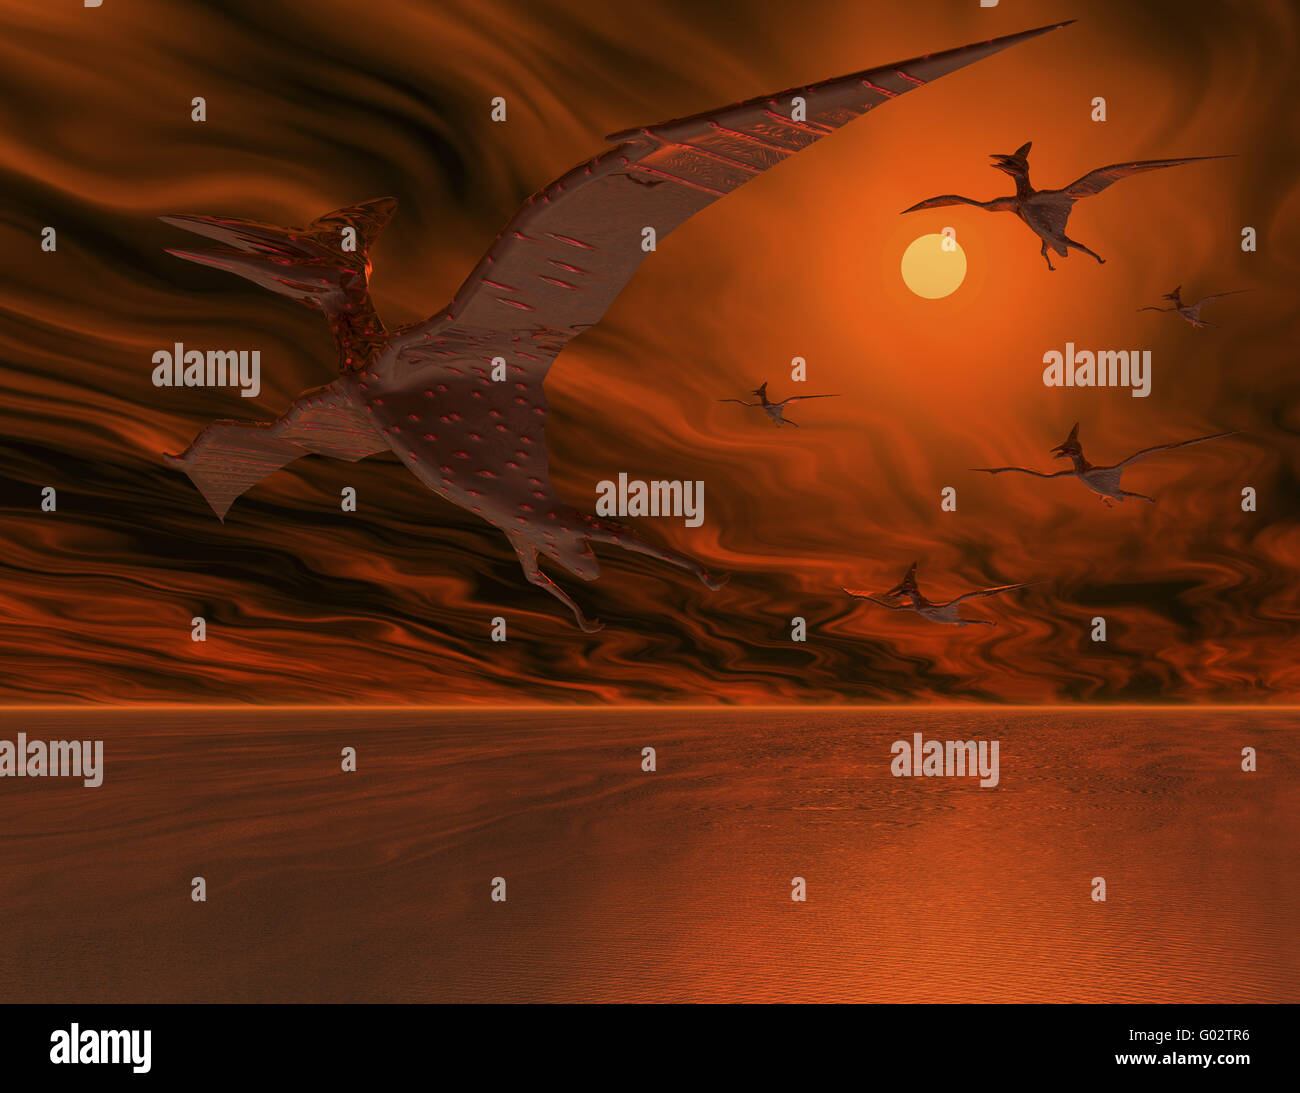 Flugsaurier - Flying dinosaurs Stock Photo